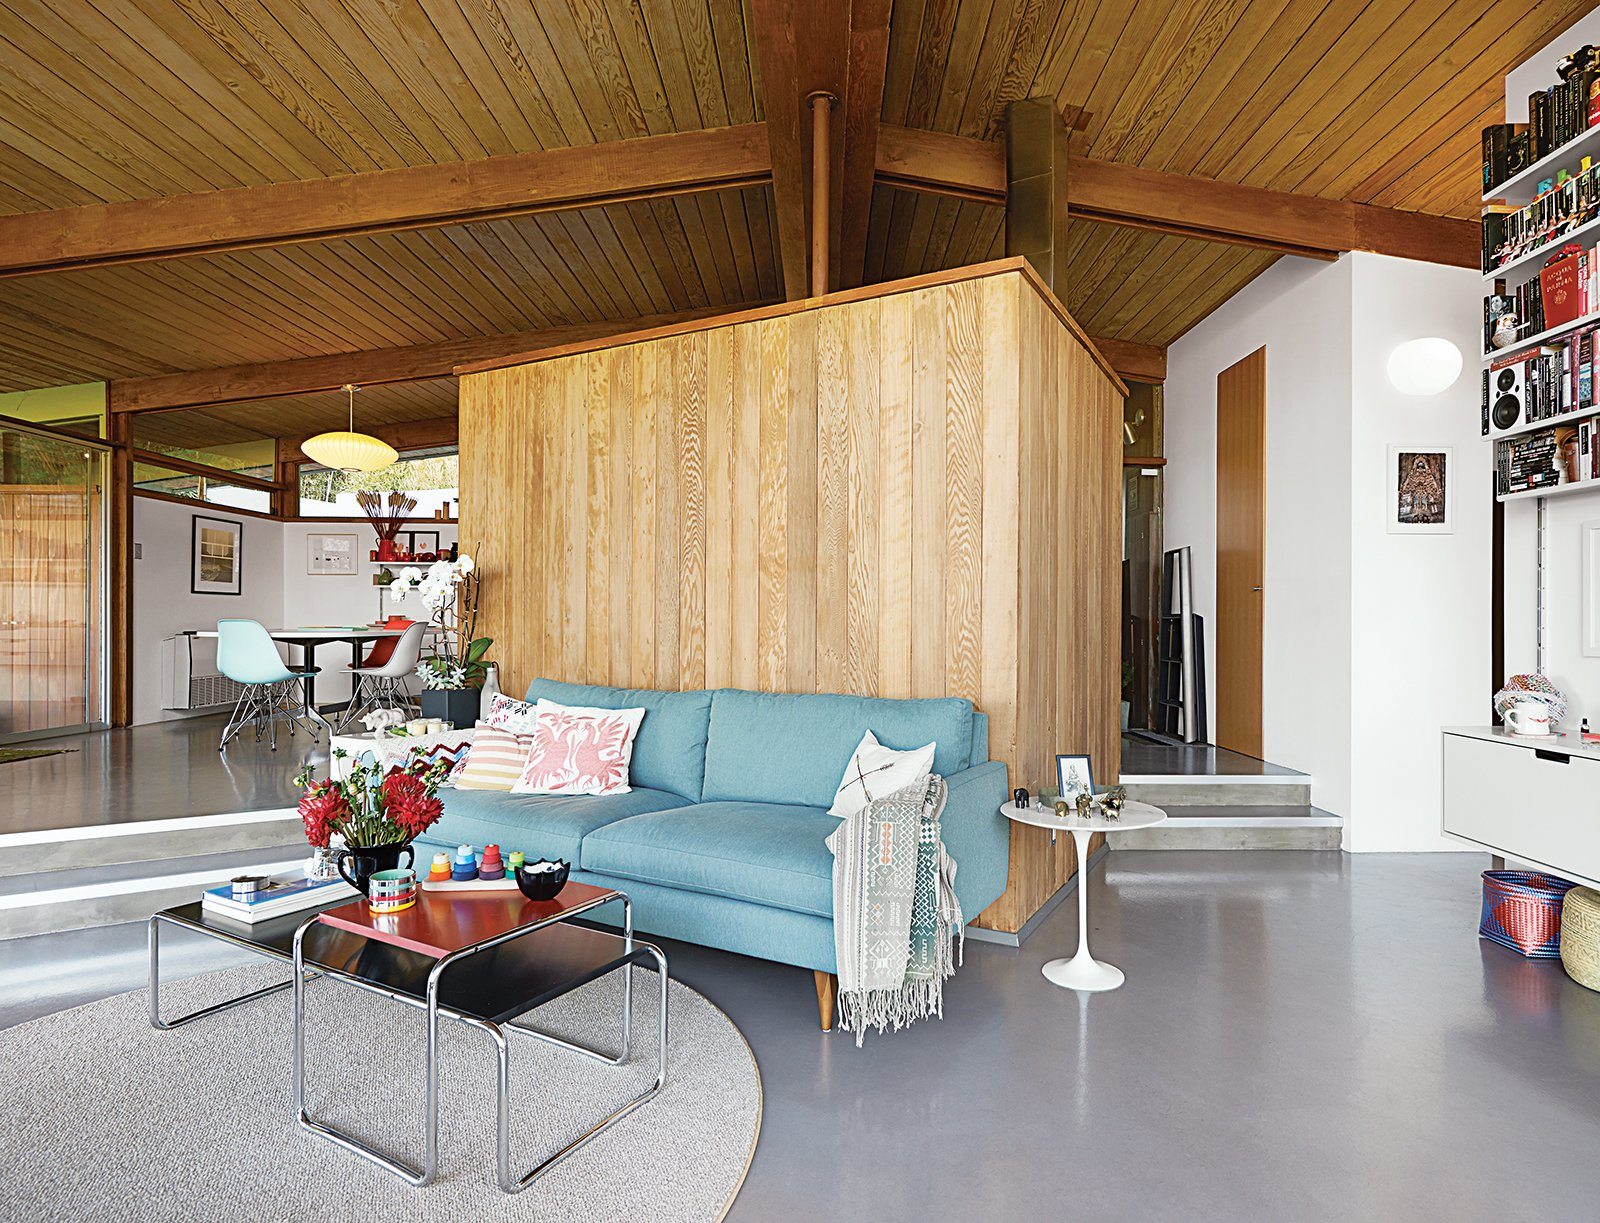 Living Room, Sofa, Coffee Tables, Concrete Floor, and Rug Floor Elise Loehnen and Rob Fissmer bought their house, which dates to 1950, in 2012, furnishing the living room with a Jasper sofa by Room & Board, Laccio tables by Marcel Breuer, and a wool sisal rug from Madison Flooring and Design.  47+ Midcentury Modern Homes Across America by Luke Hopping from A Midcentury Home Keeps the History Alive